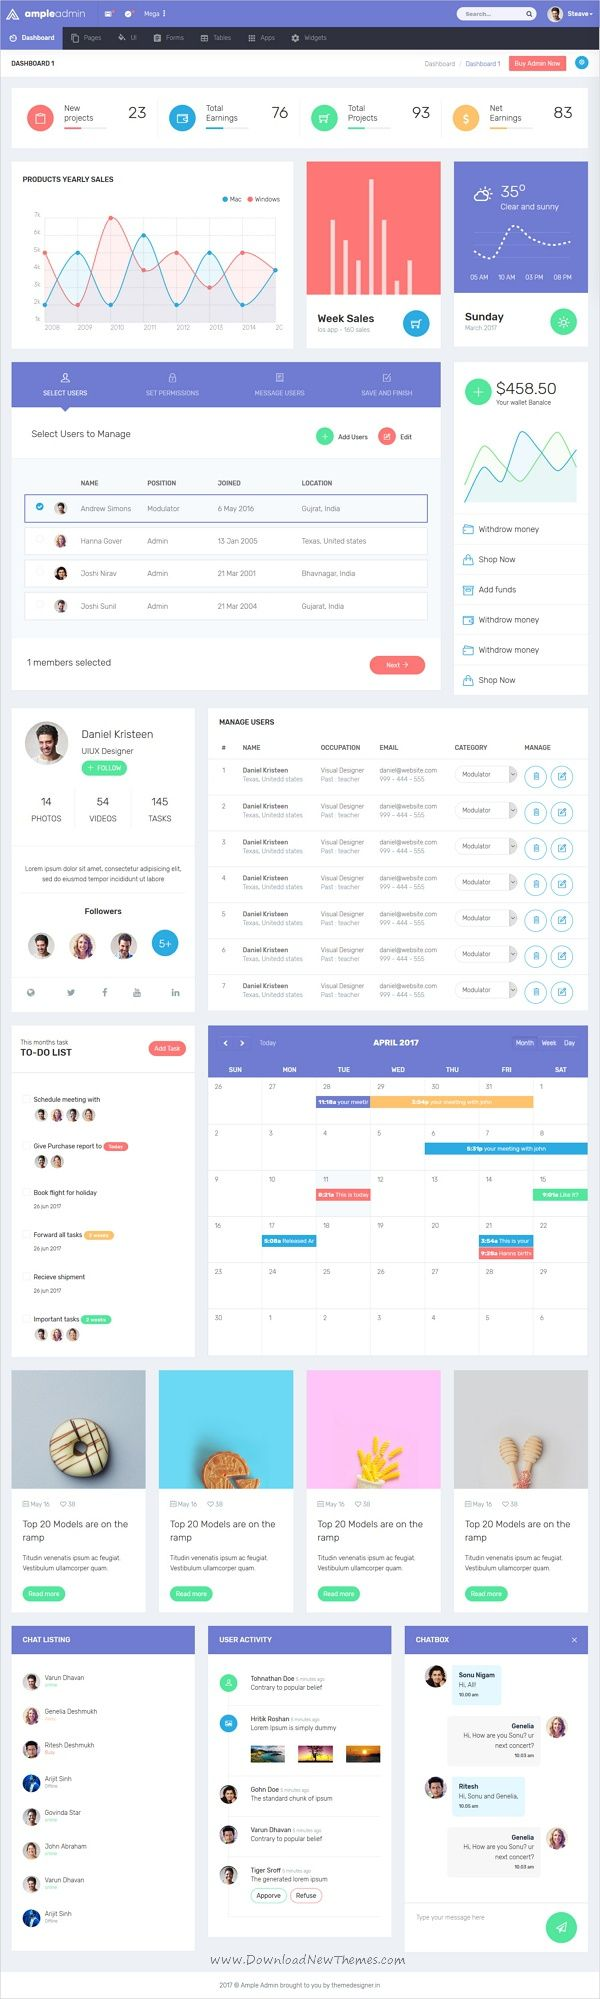 Ample #Admin is a popular open source WebApp #template for admin dashboards and control panels based on CSS, Bootstrap framework with 7 unique homepage layouts download now➩ https://wrapbootstrap.com/theme/ample-admin-dashboard-template-WB0RDB1MP?ref=datasata